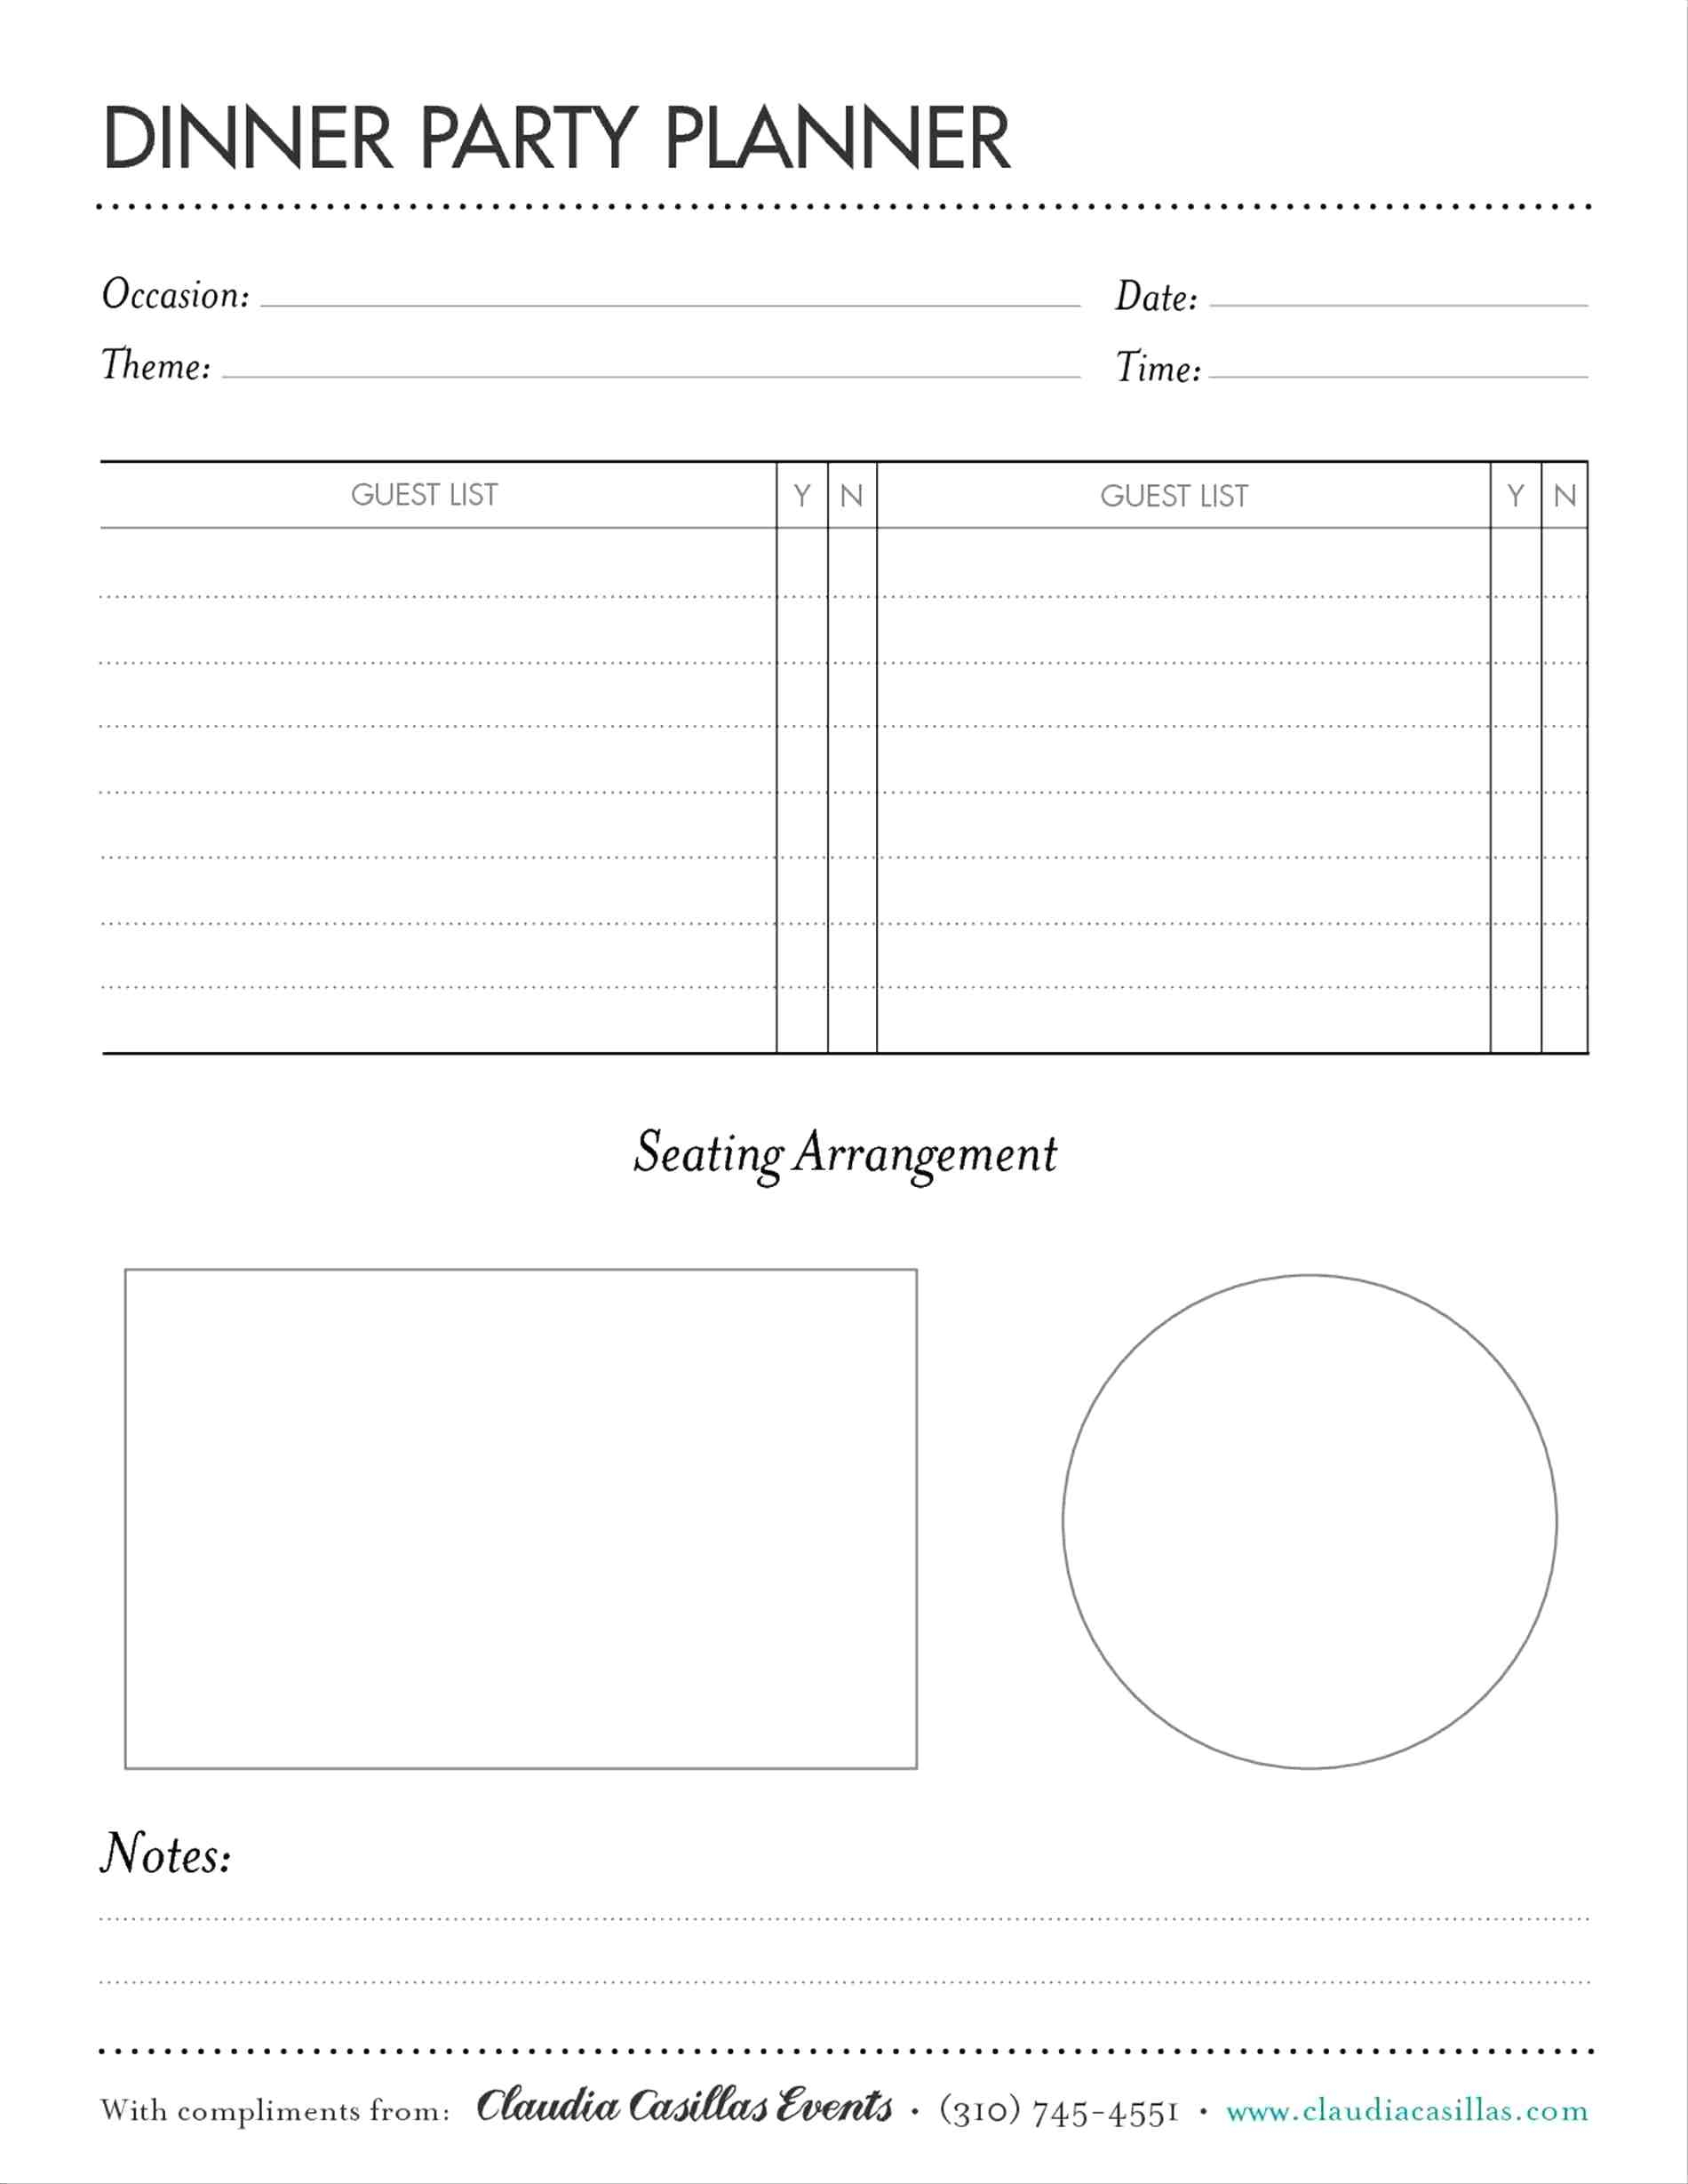 Weight Watchers Points Spreadsheet With Template: Printable Journal Template For Business Accounting